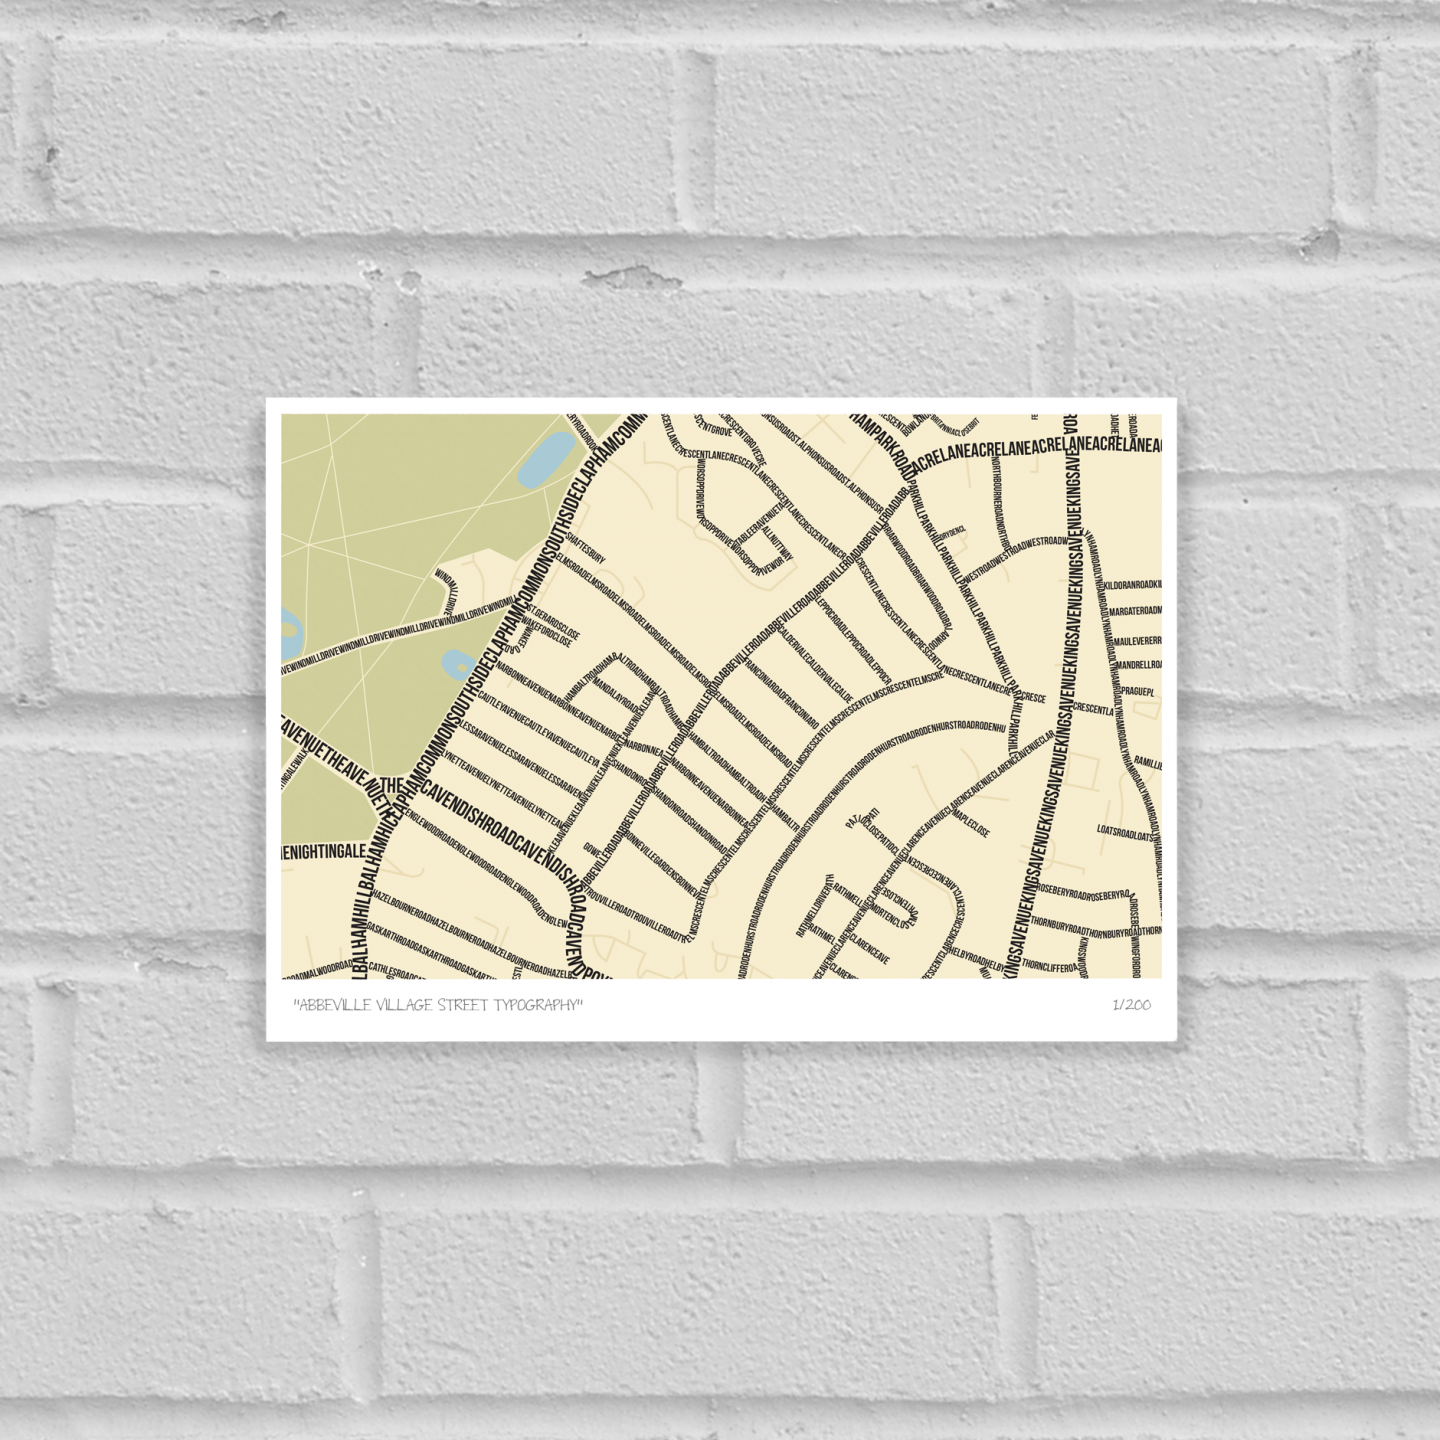 Abbeville Village Street Typography Map Art Poster Print Unframed